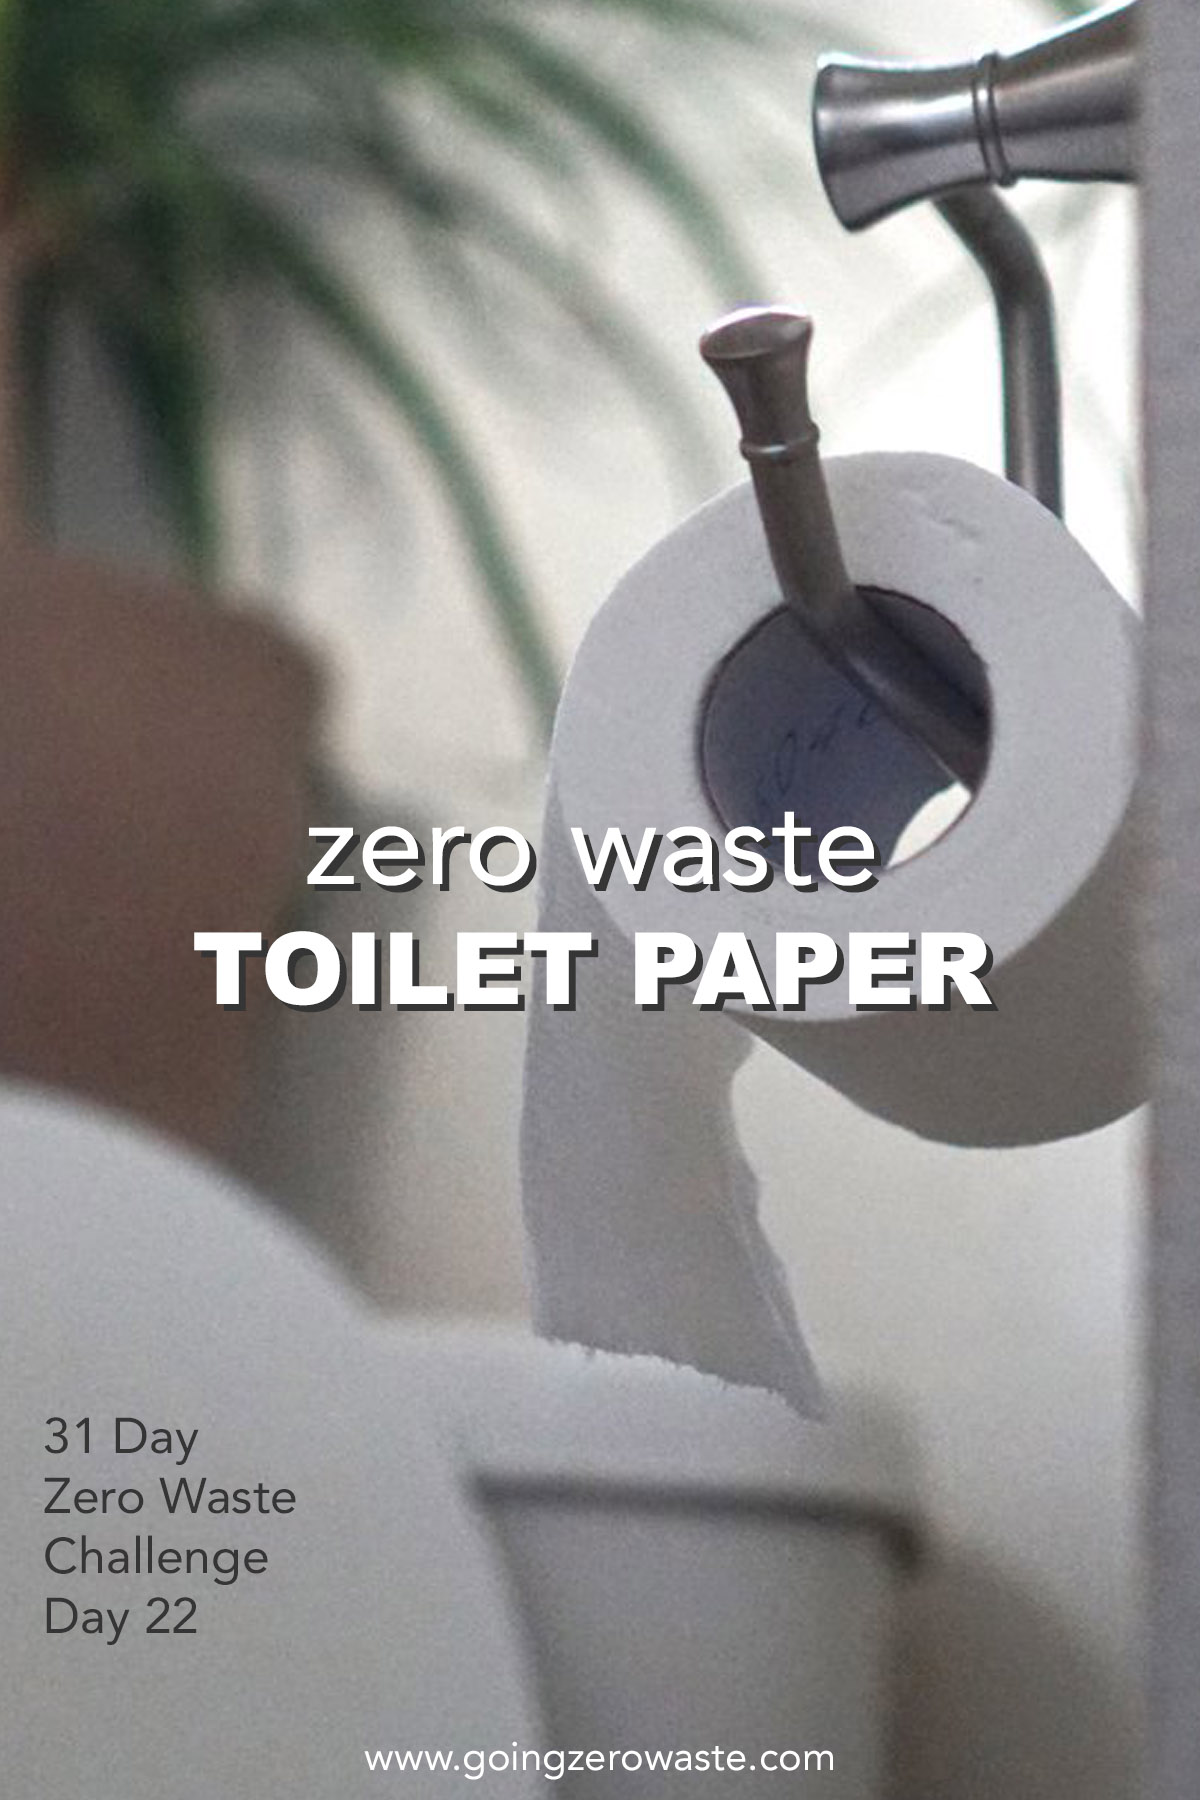 zero waste toilet paper | day 22 of the zero waste challenge from www.goingzerowaste.com #zerowaste #toiletpaper #zerowastechallenge